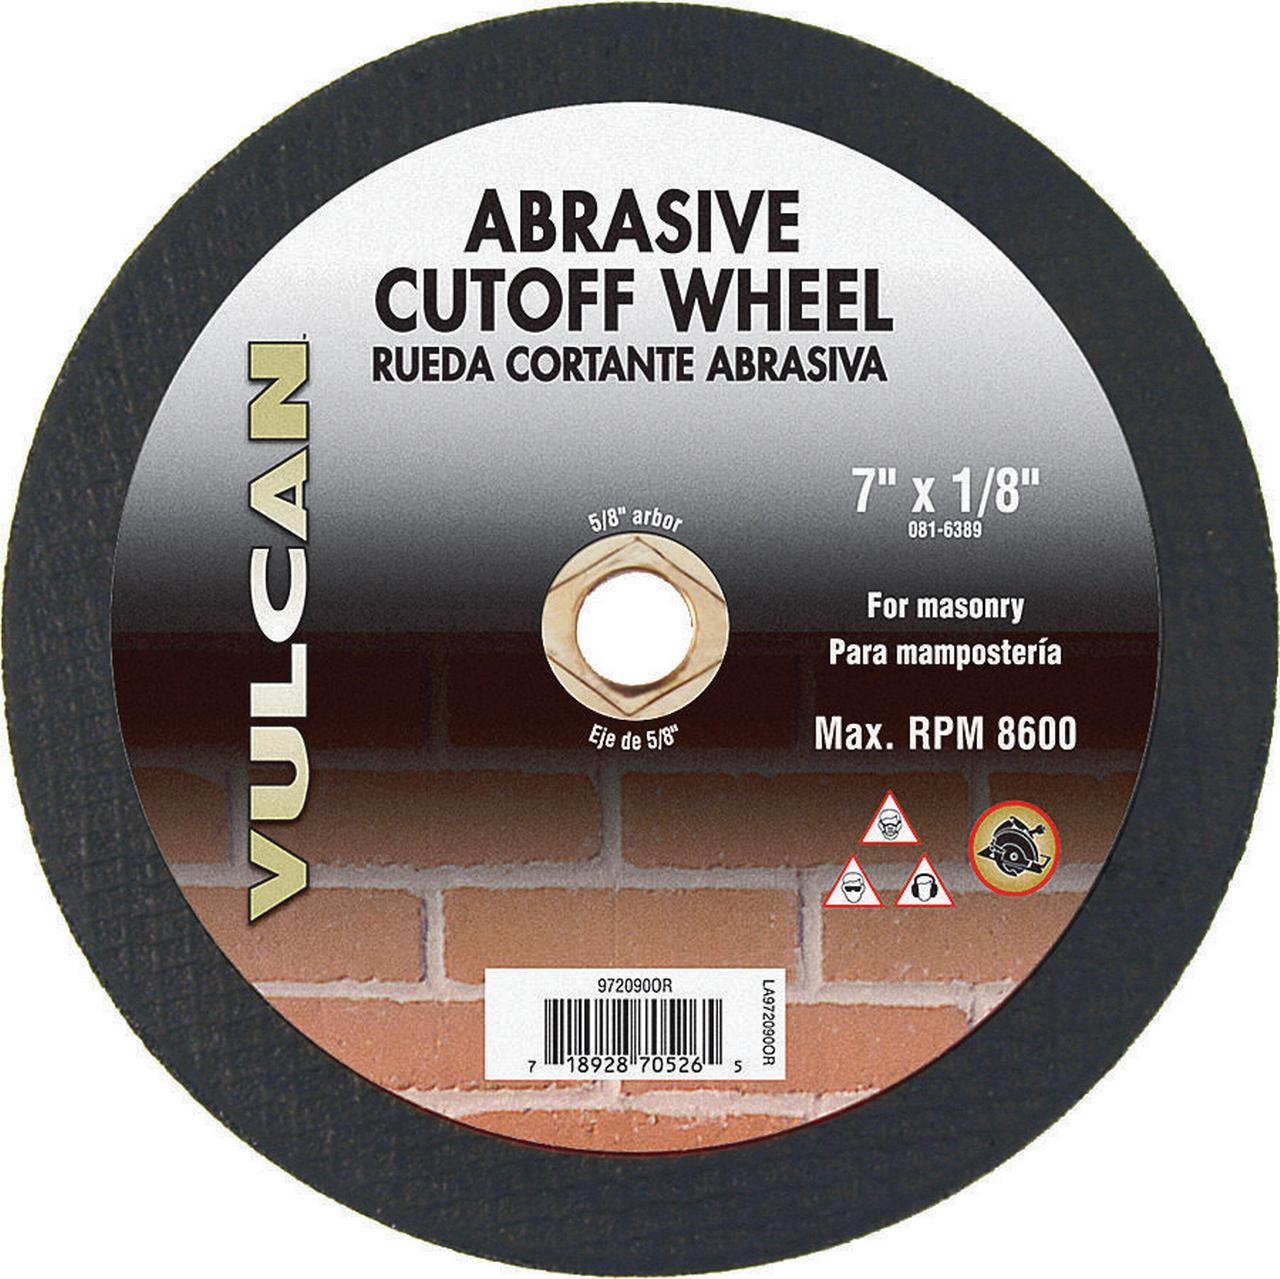 Vulcan 972090OR Cut-Off Wheel, 7 in Dia x 1/8 in T, 5/8 in Arbor